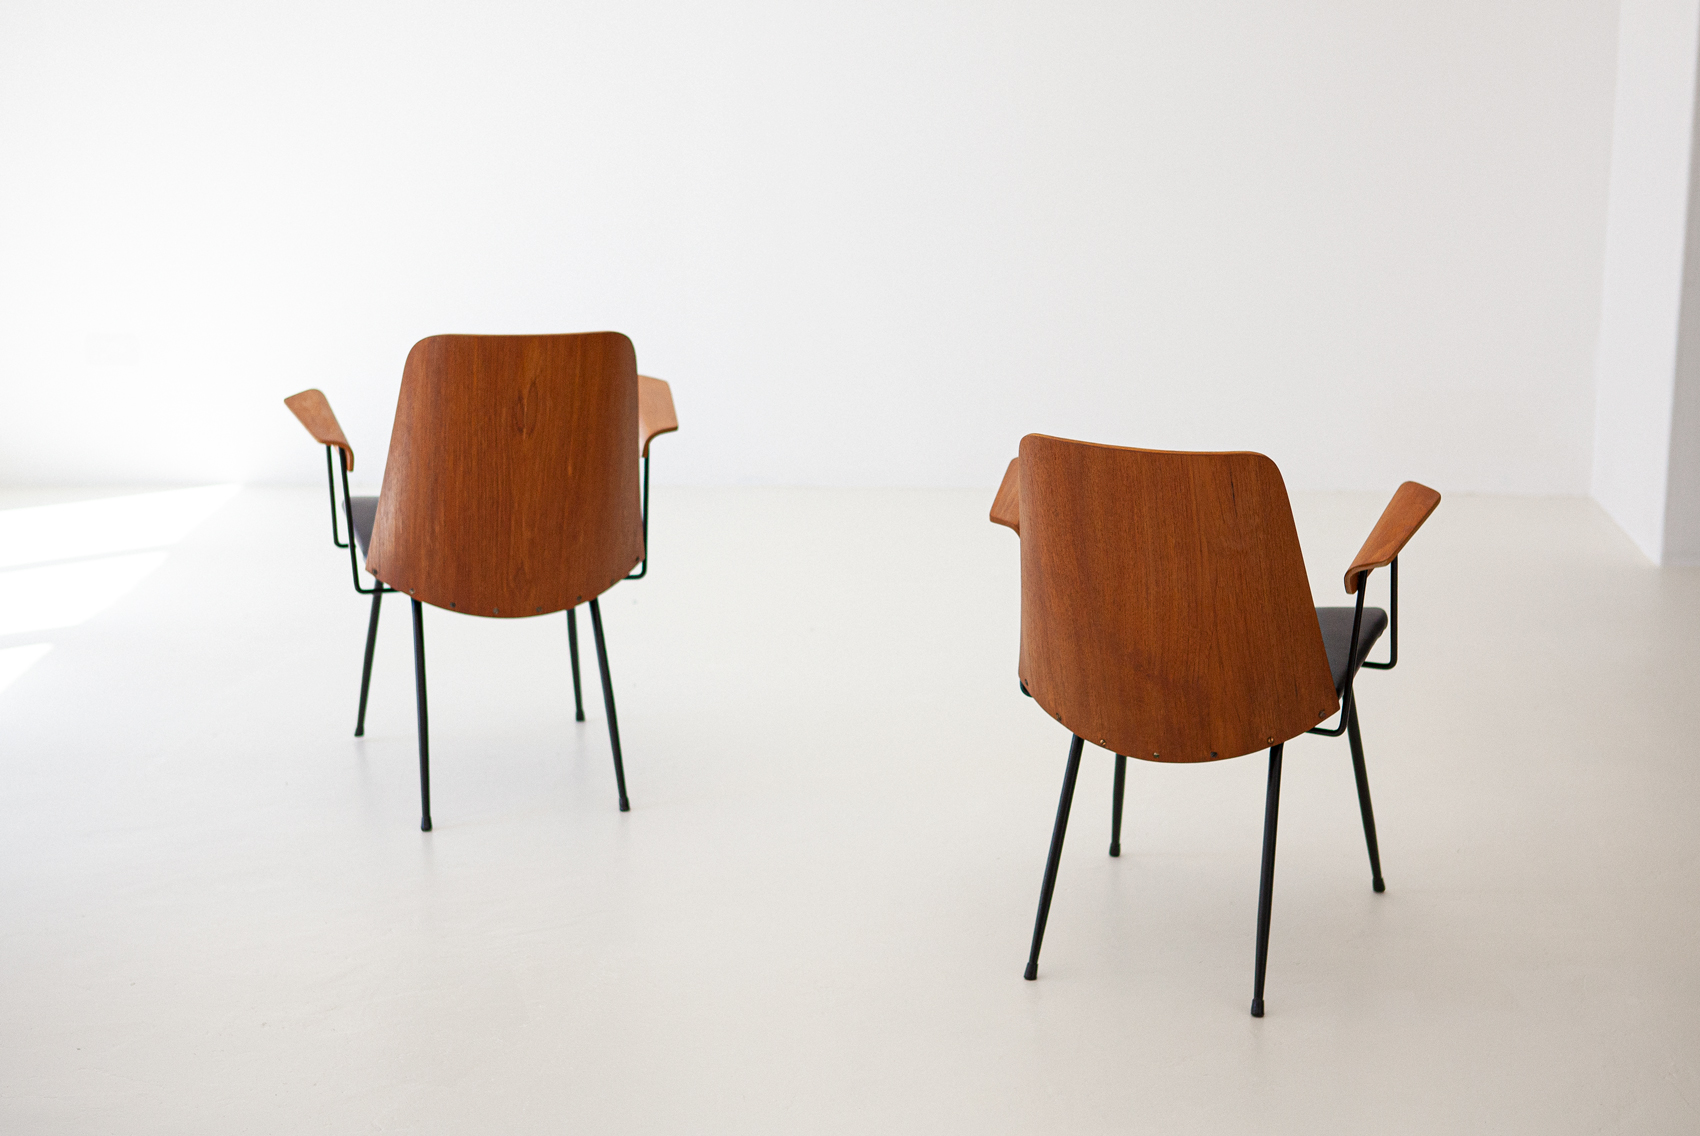 Italian-modern-desk-chairs-by-carlo-ratti-7-se287